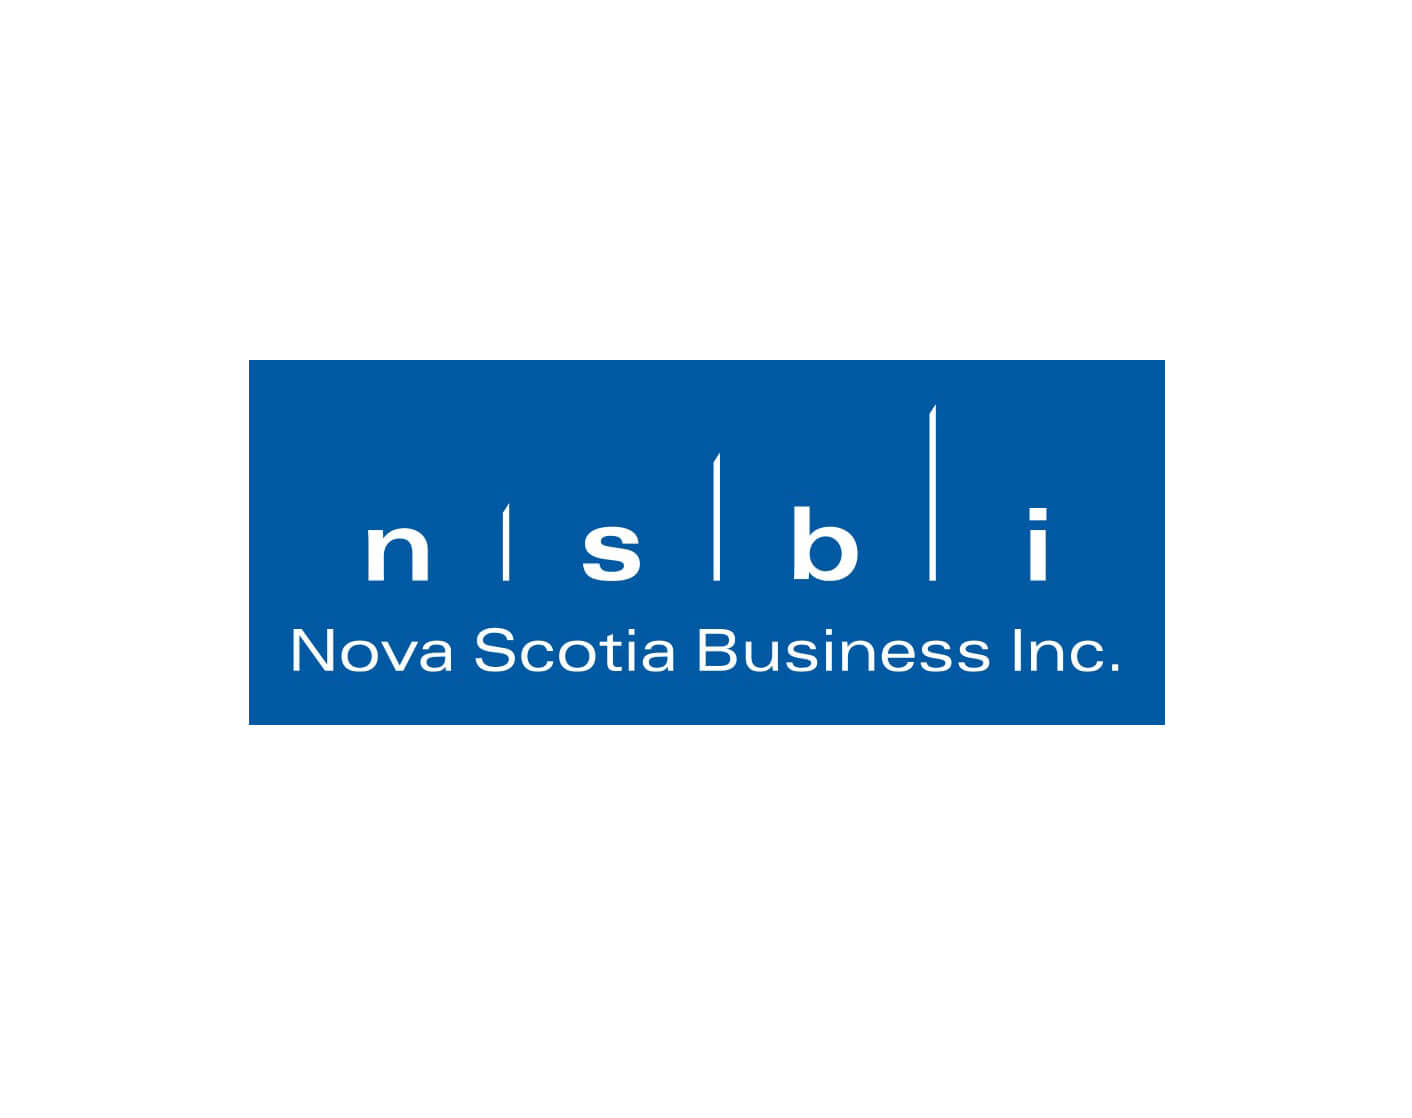 image of Nova Scotia Business Inc. logo